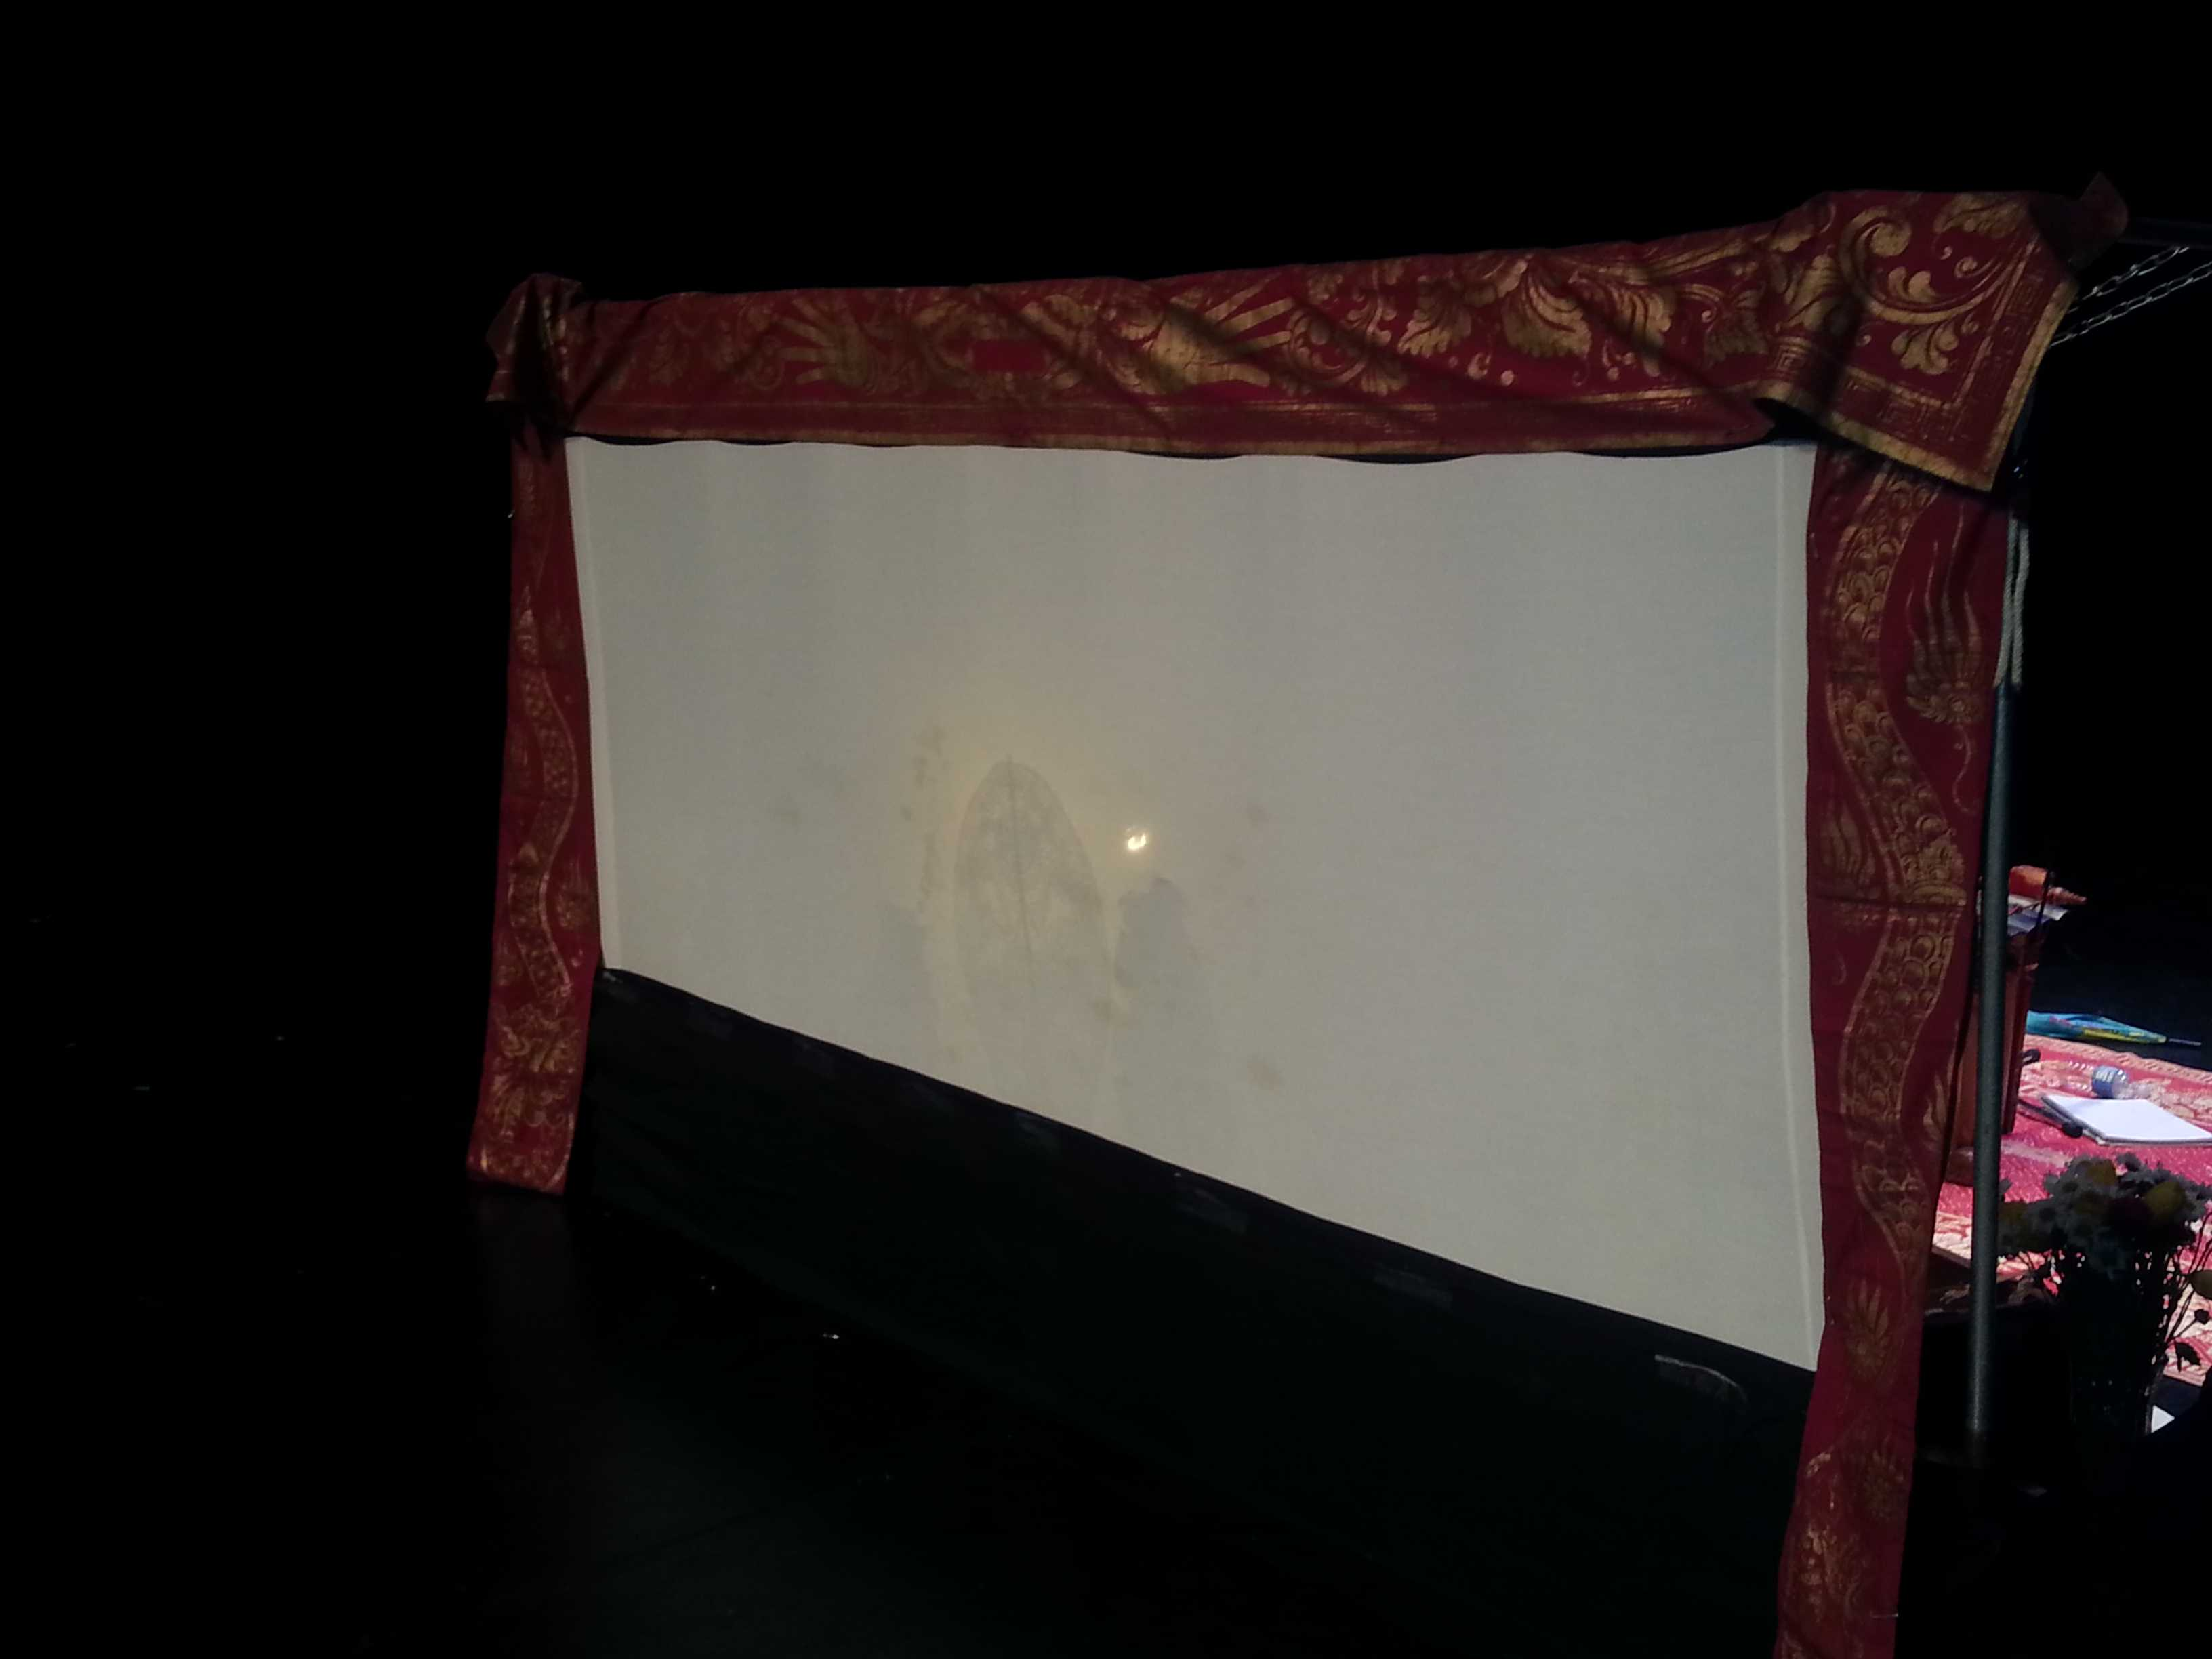 The linen cloth that serves as the canvas for the shadow puppets, which are cast by placing a light bulb behind it.